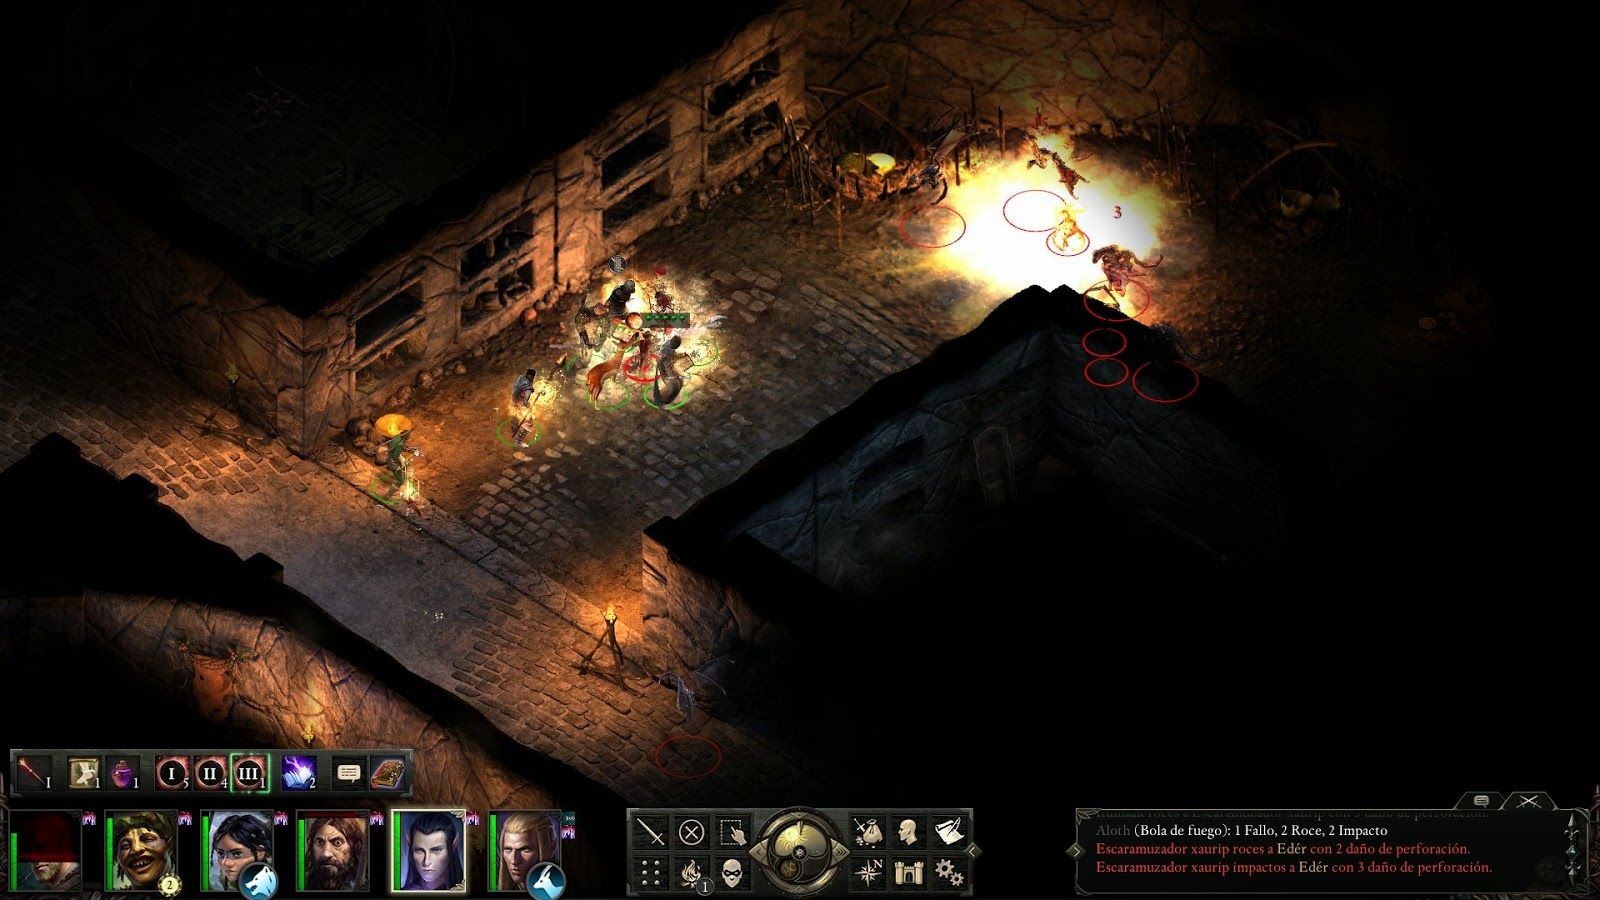 descargar Pillars of Eternity sin torrent mac, android apk